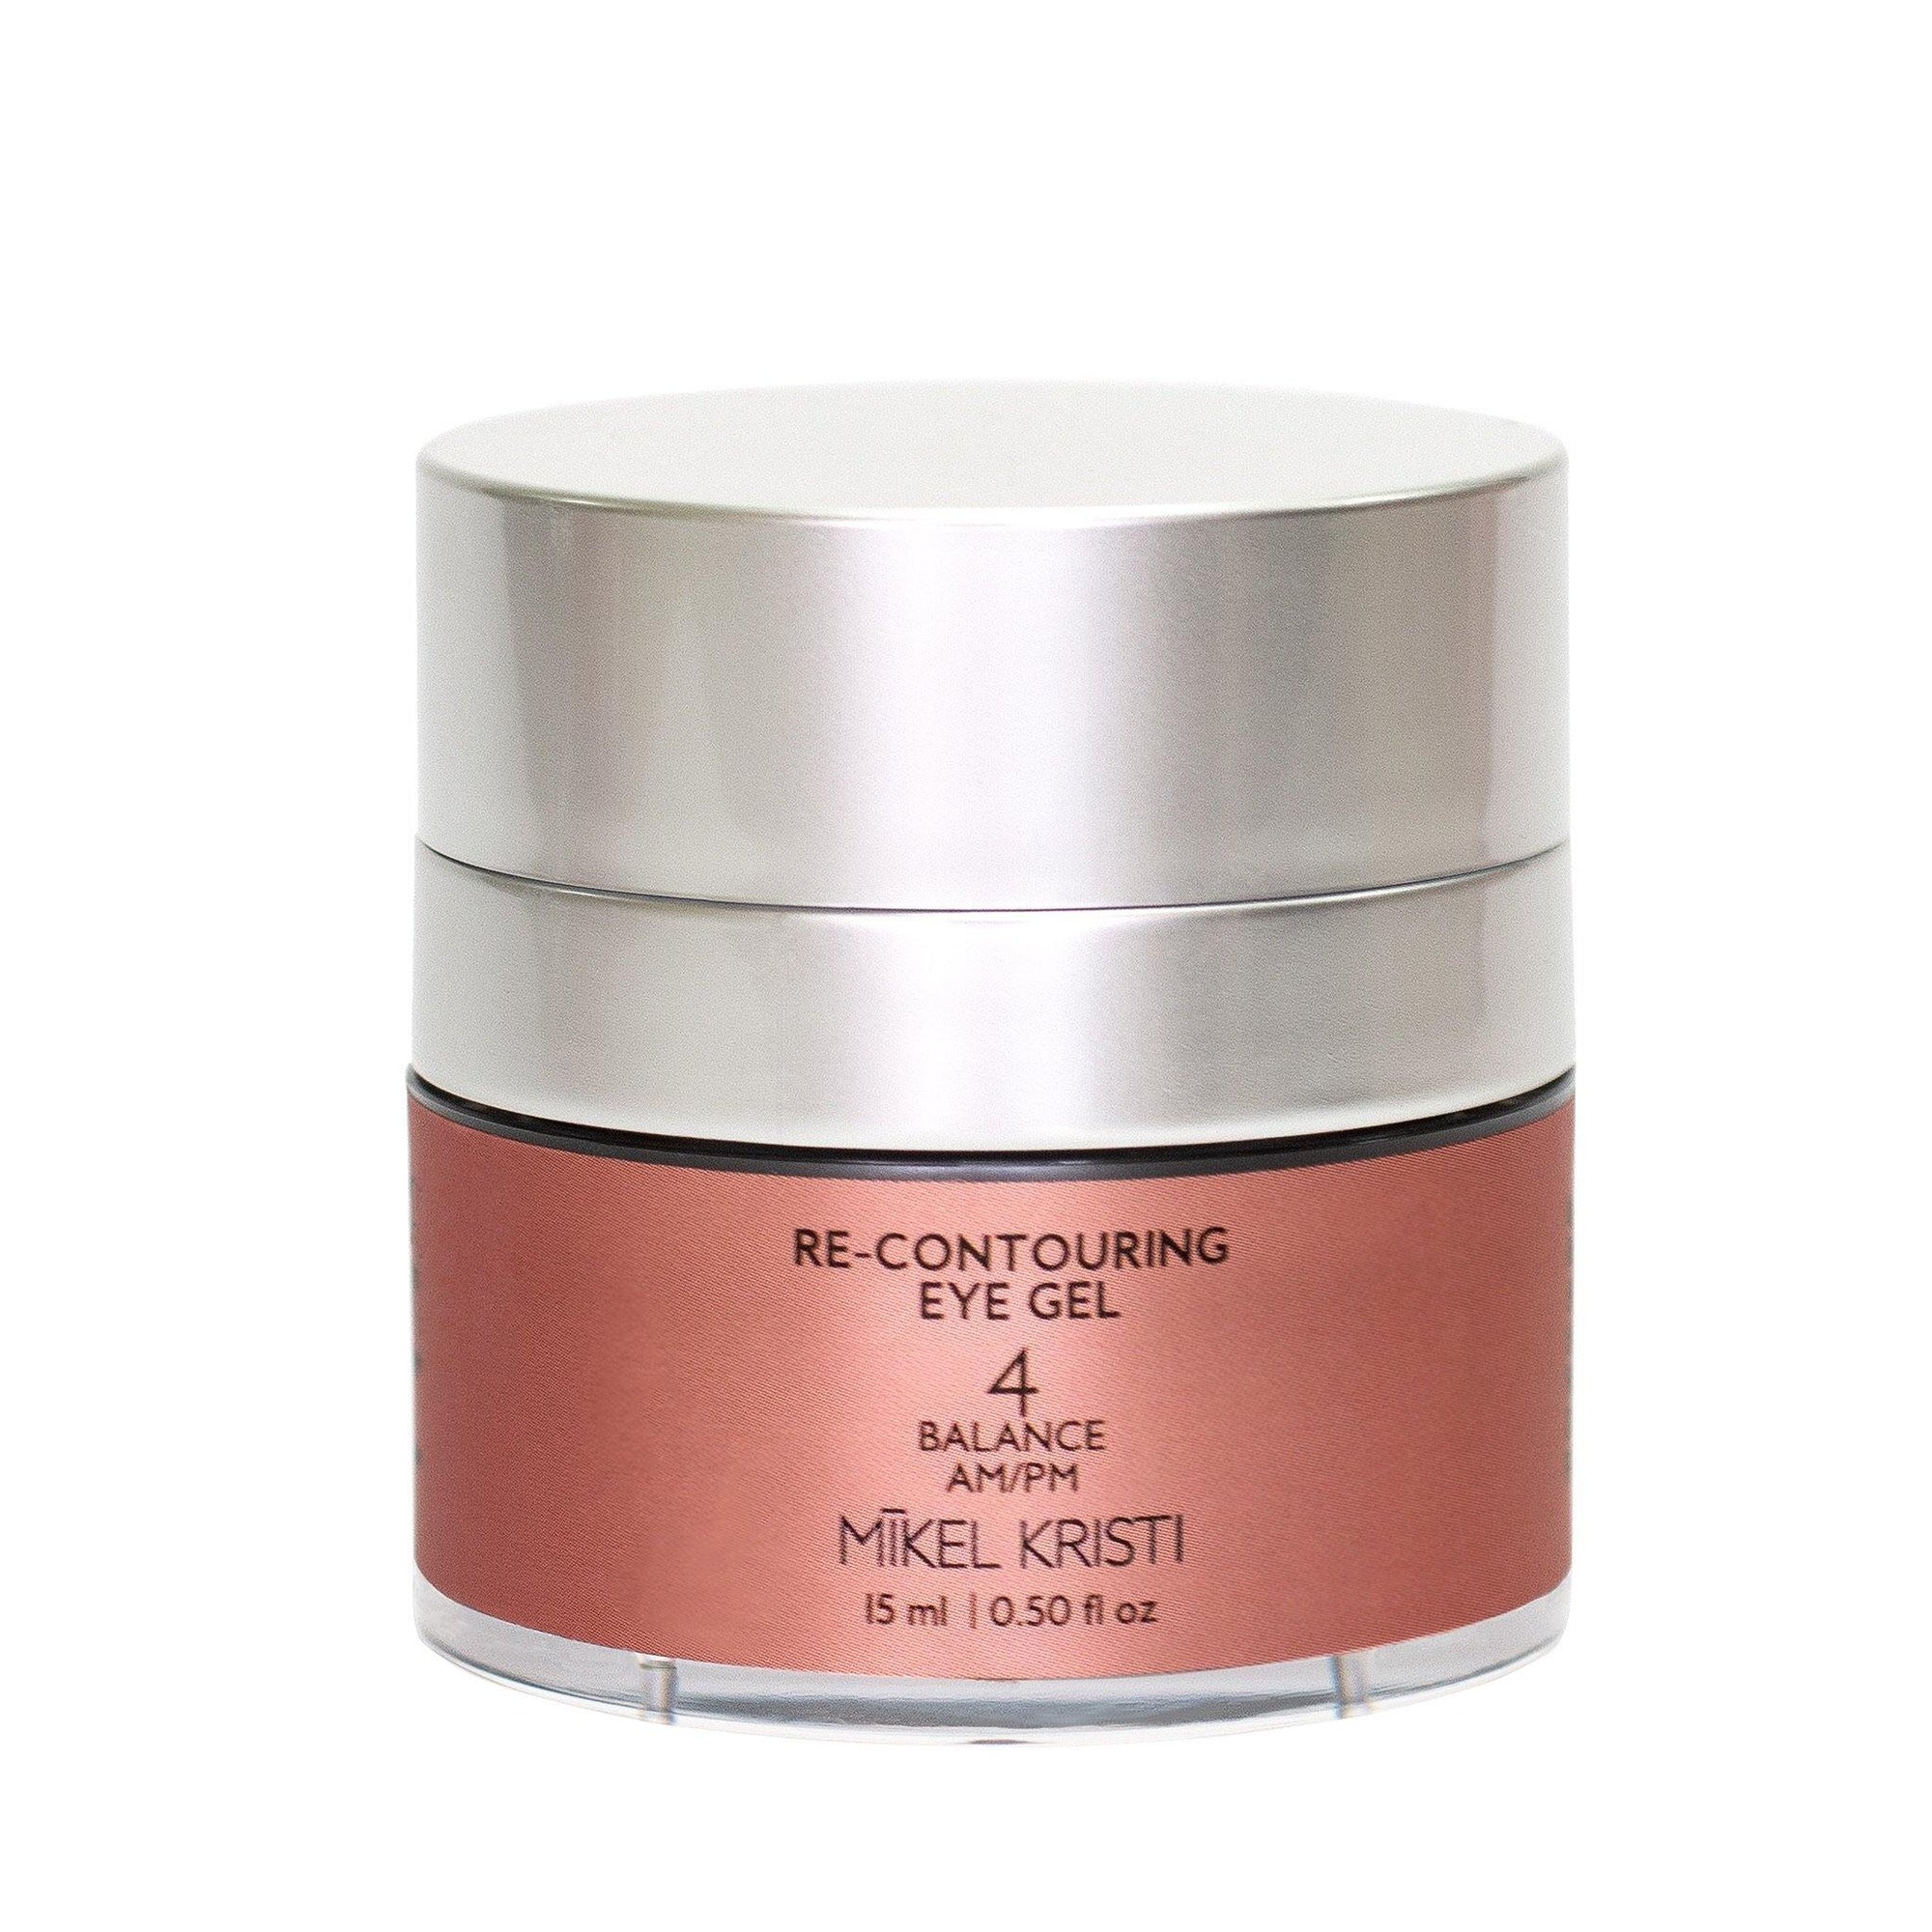 Recontorung eye gel by Mikel Kristi Skincare